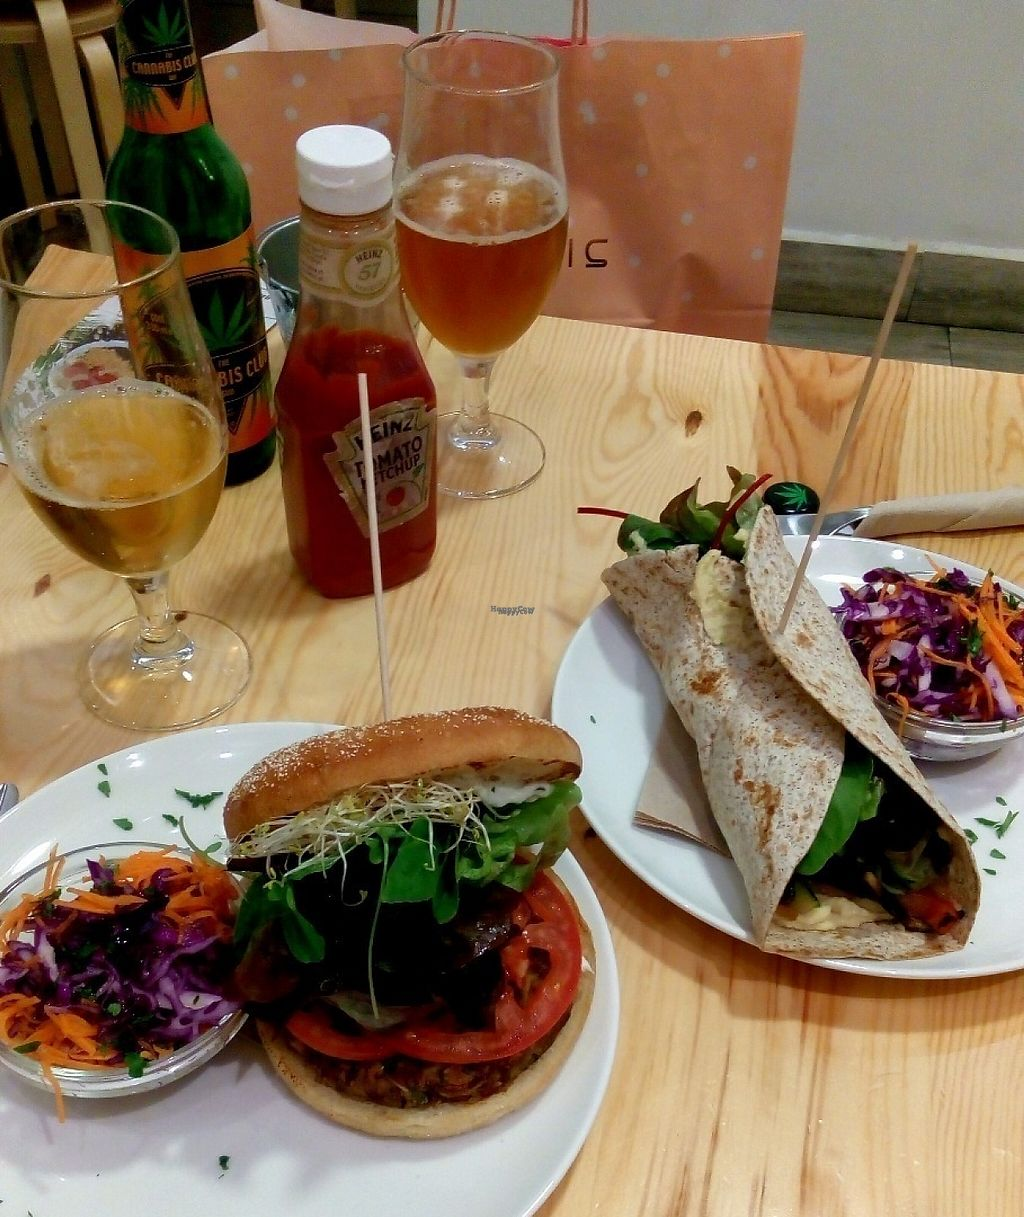 "Photo of Almalibre Acai Bar  by <a href=""/members/profile/Balanced%20eating"">Balanced eating</a> <br/>Vegan red rice and tempeh burger with sojanese & vegan hummus wrap with grilled veggies <br/> December 24, 2016  - <a href='/contact/abuse/image/70240/204445'>Report</a>"